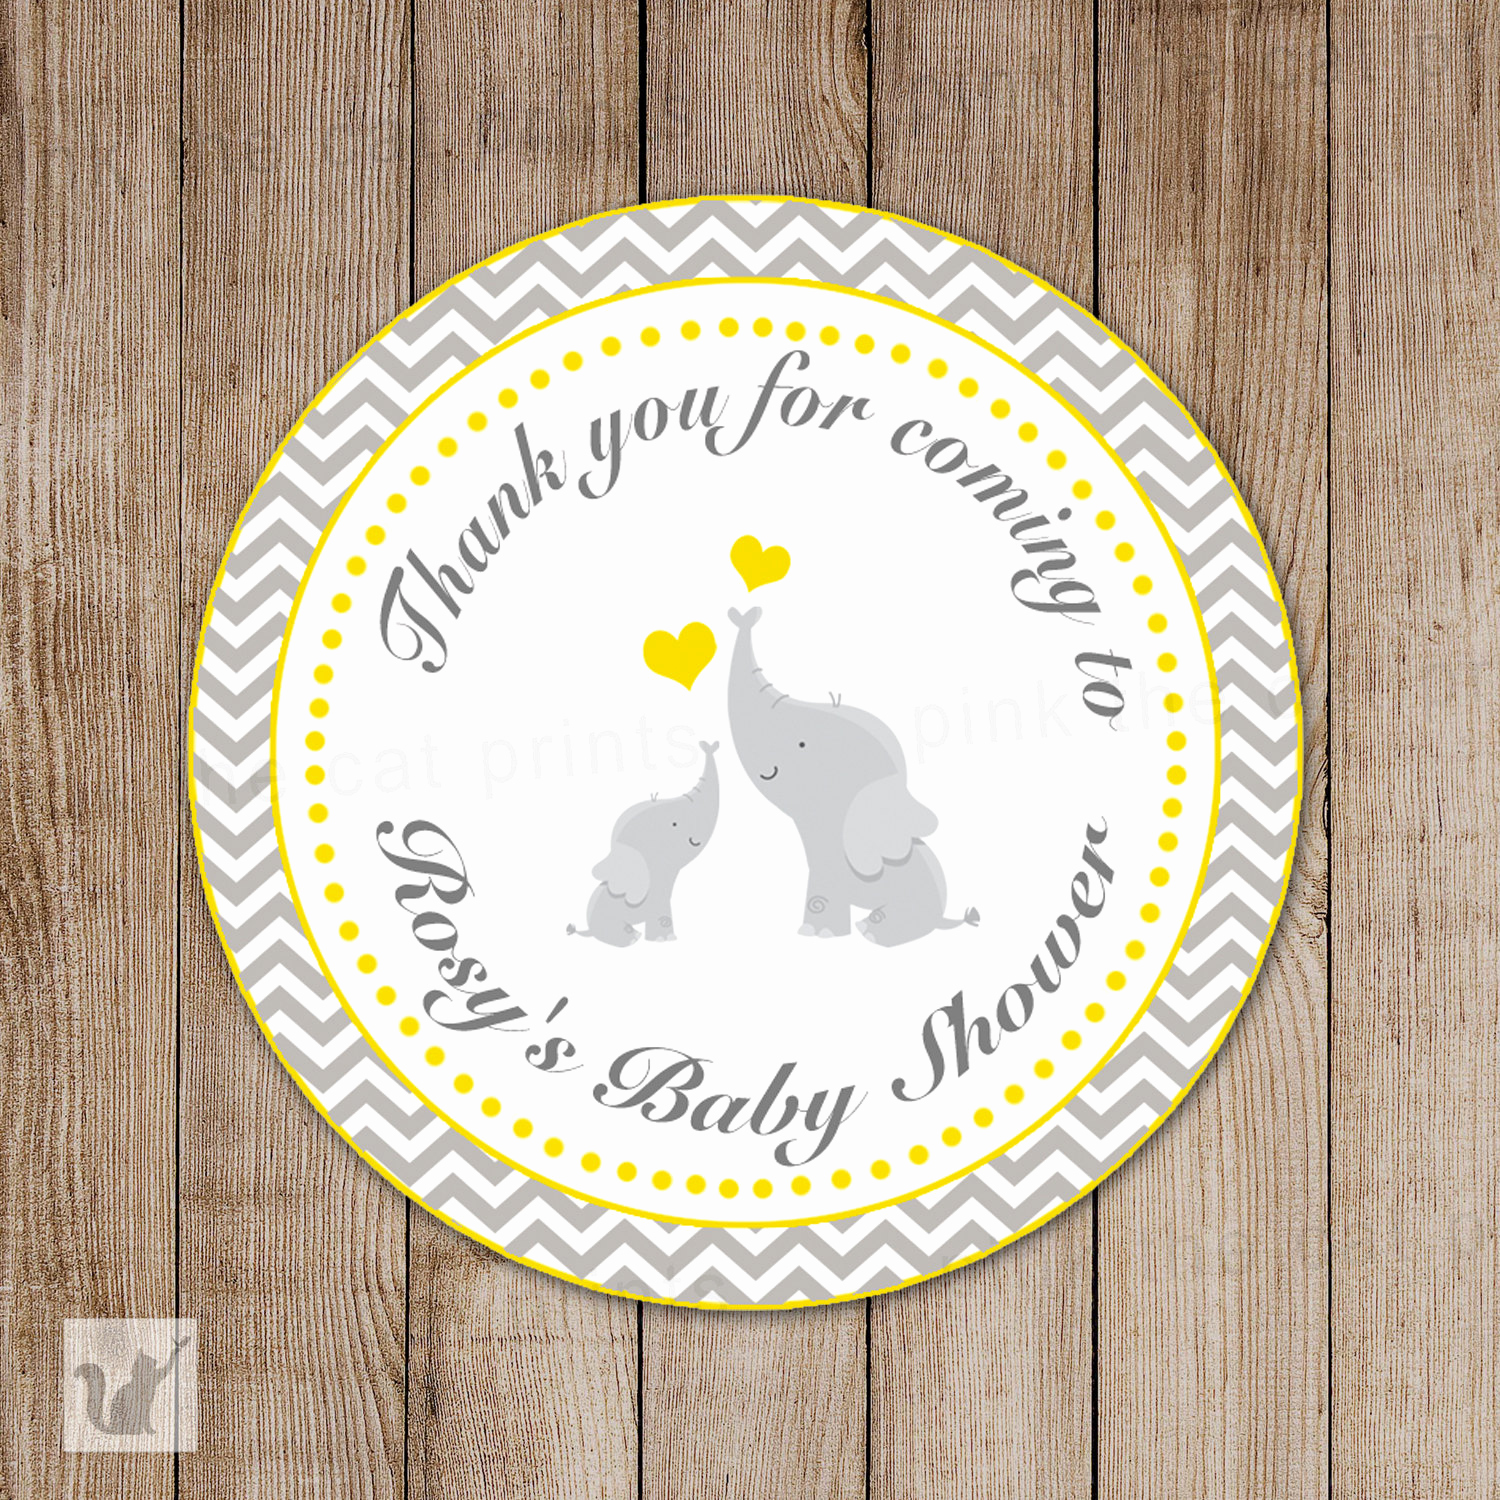 Baby Shower Thank You Tags Best Of Elephant Chevron Baby Shower Thank You Tags Yellow Grey